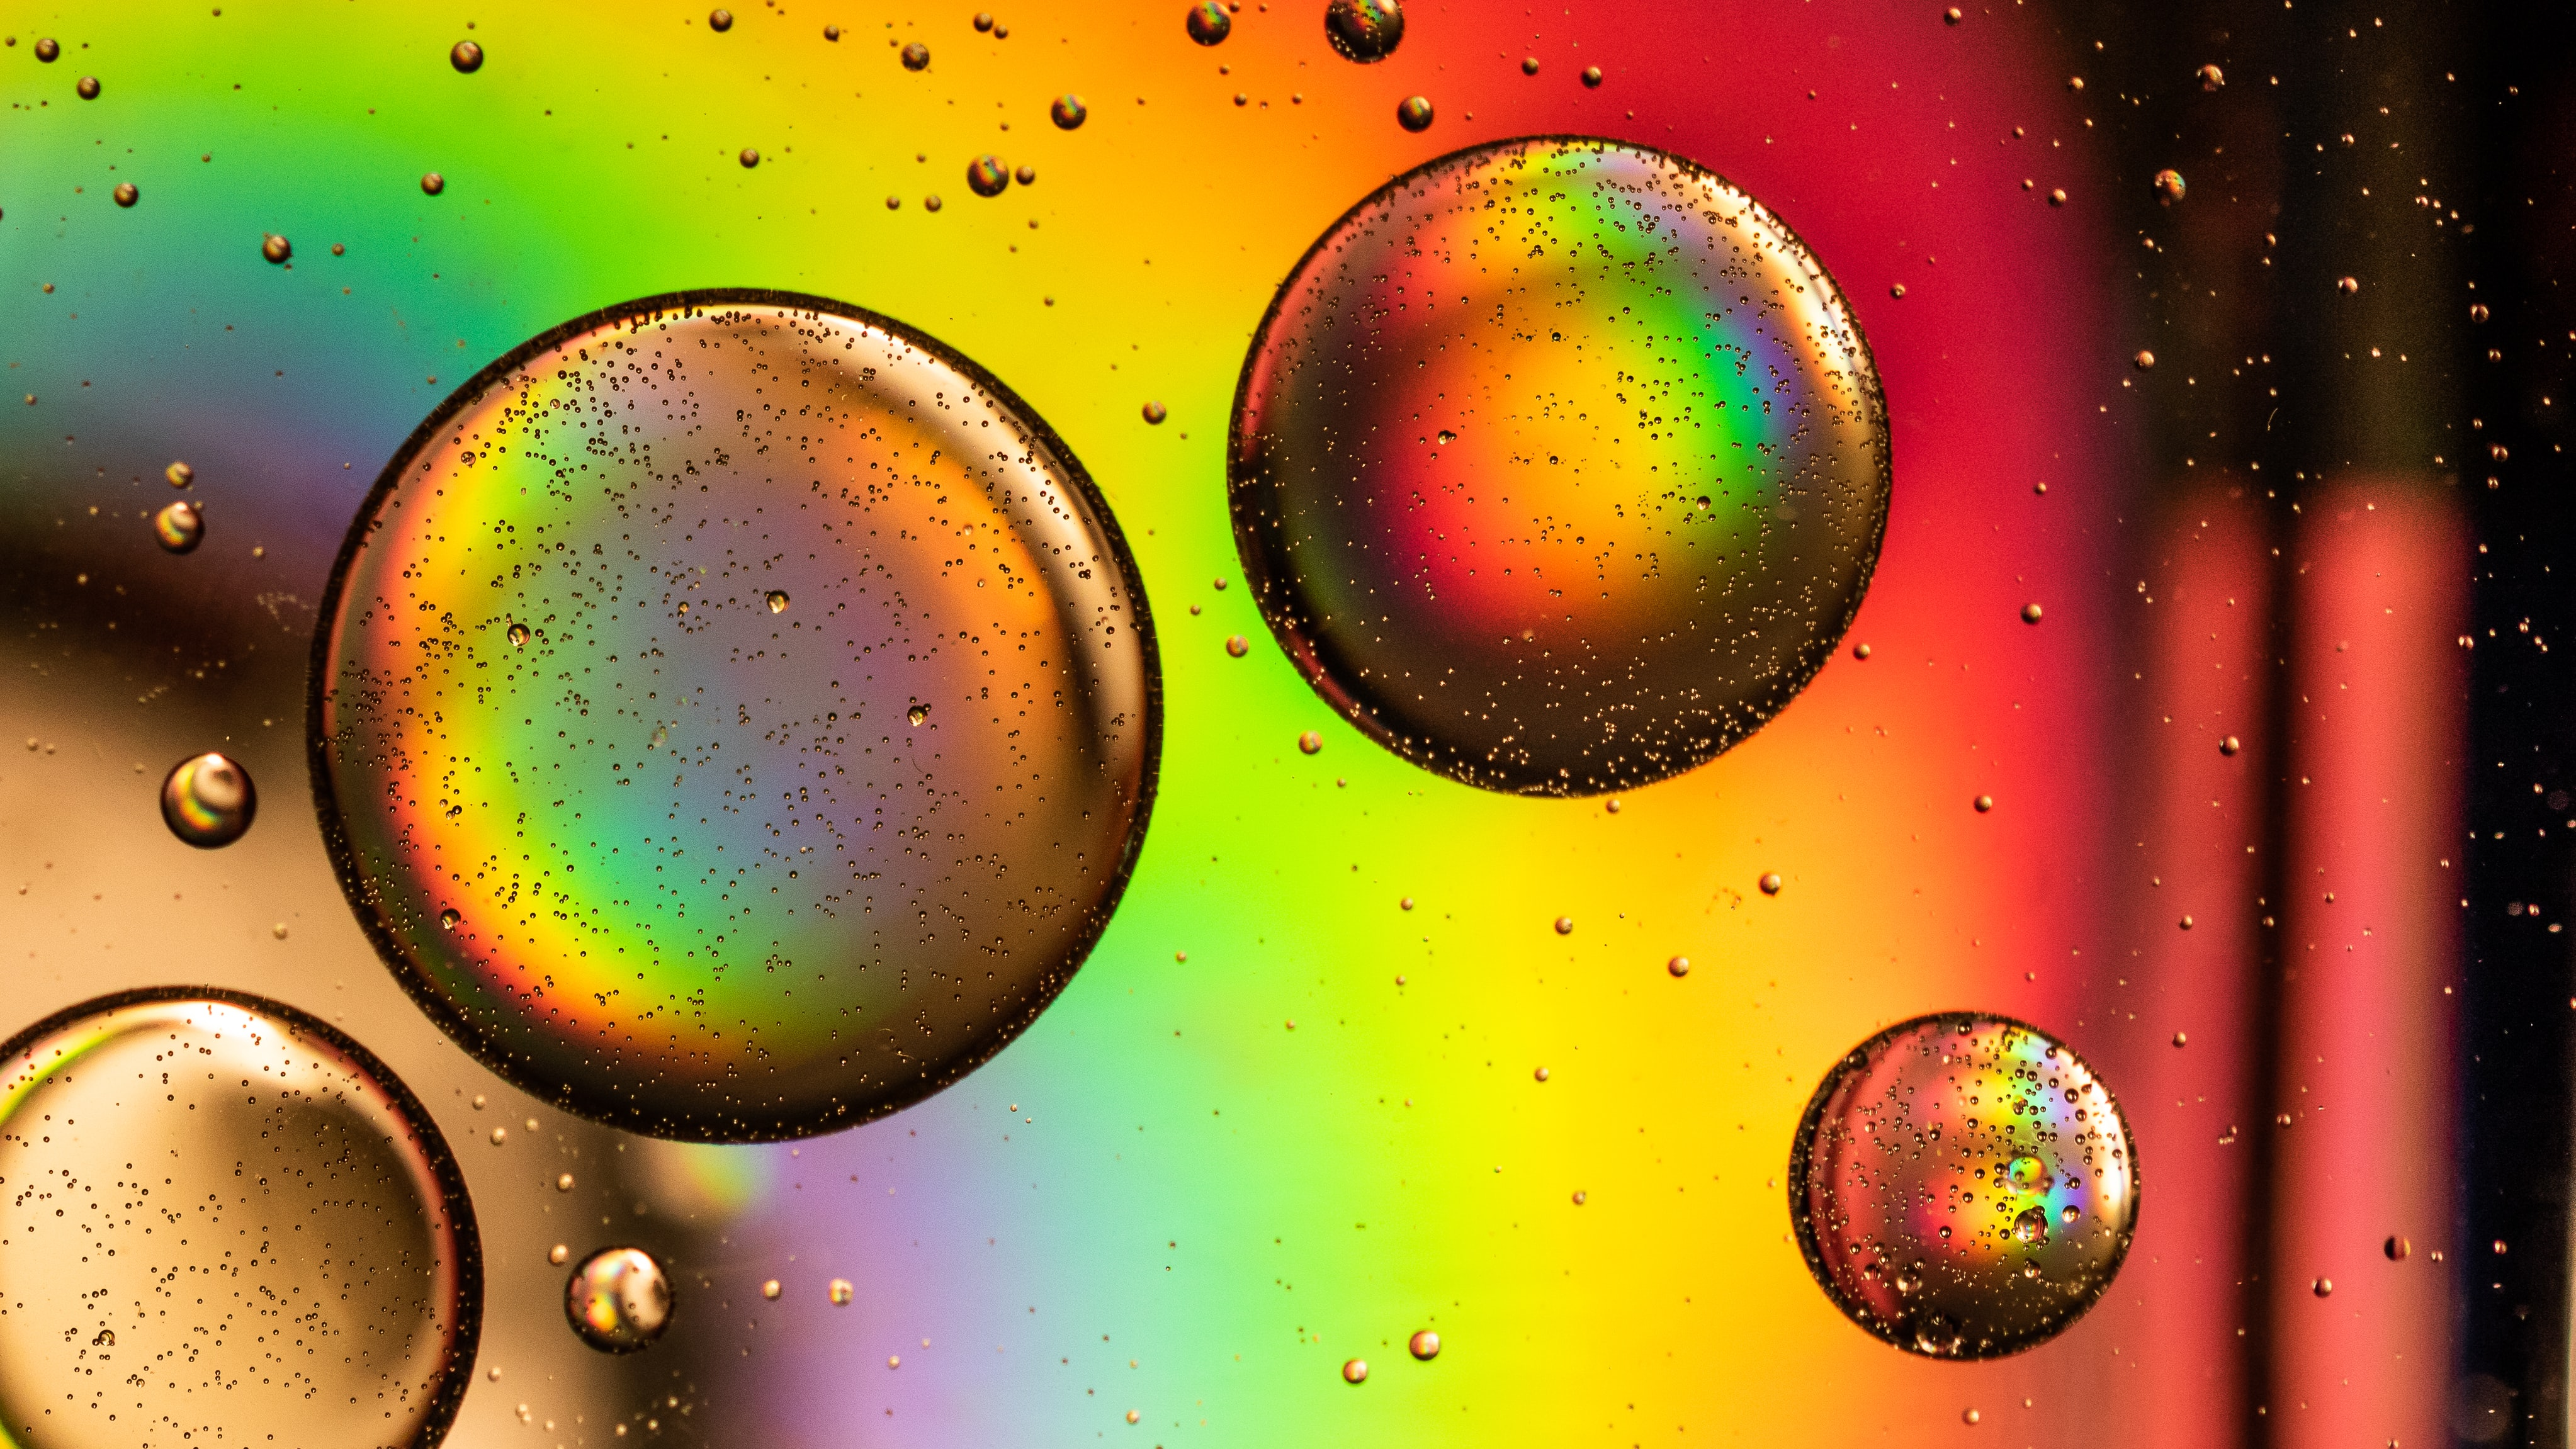 156213 download wallpaper Rainbow, Abstract, Circles, Multicolored, Motley, Bubble screensavers and pictures for free